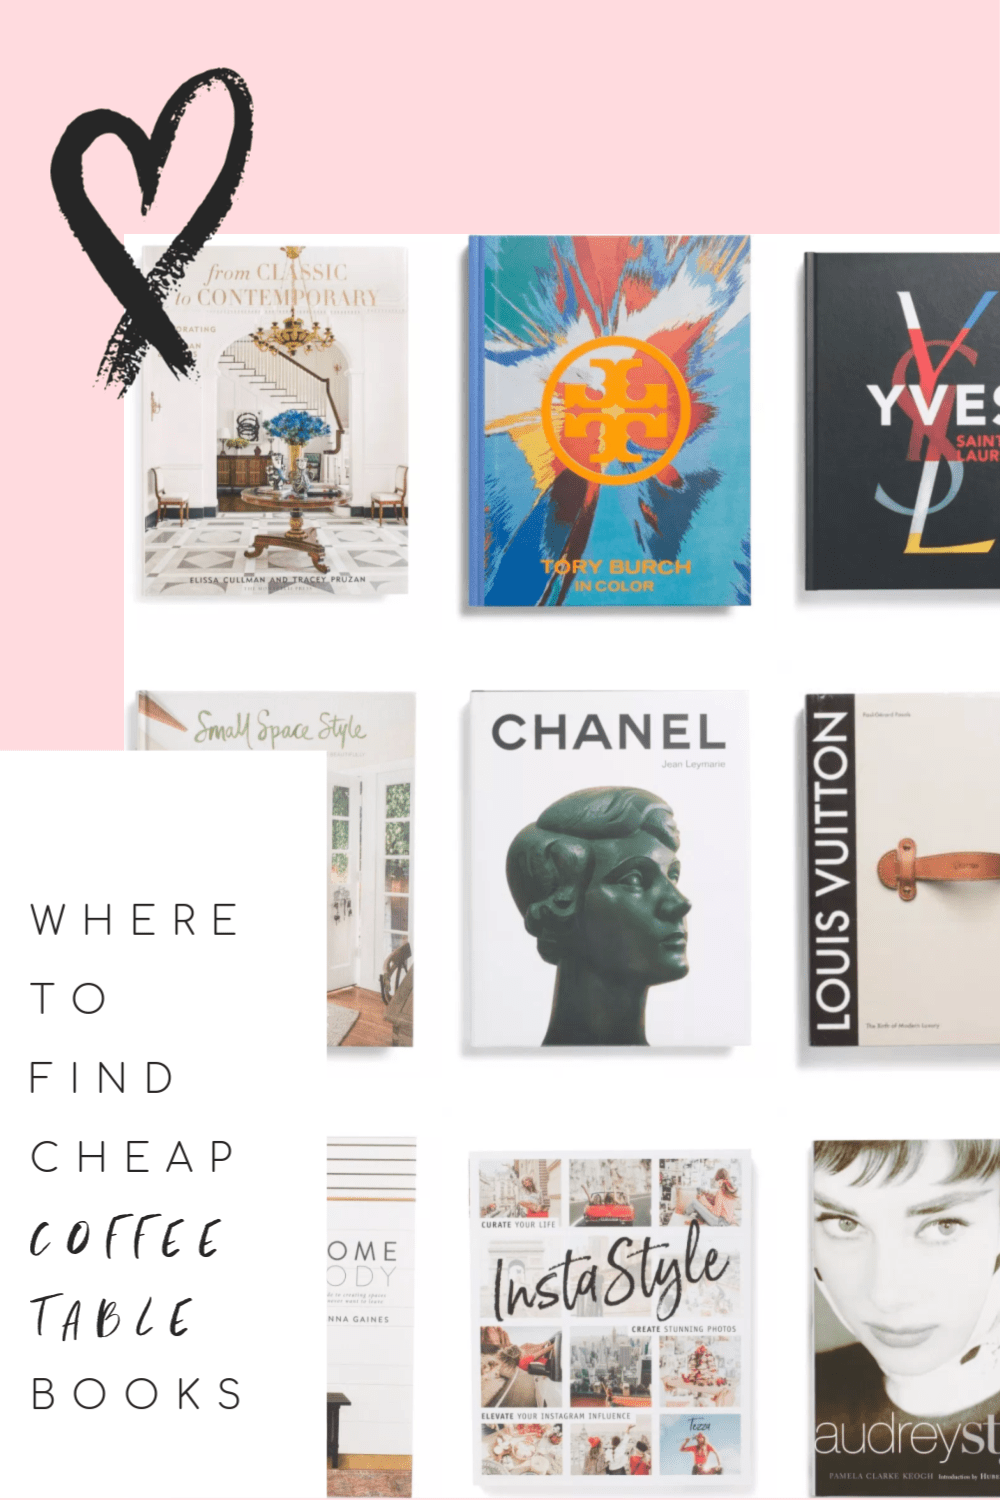 Where To Find Cute And Coffee Table Books